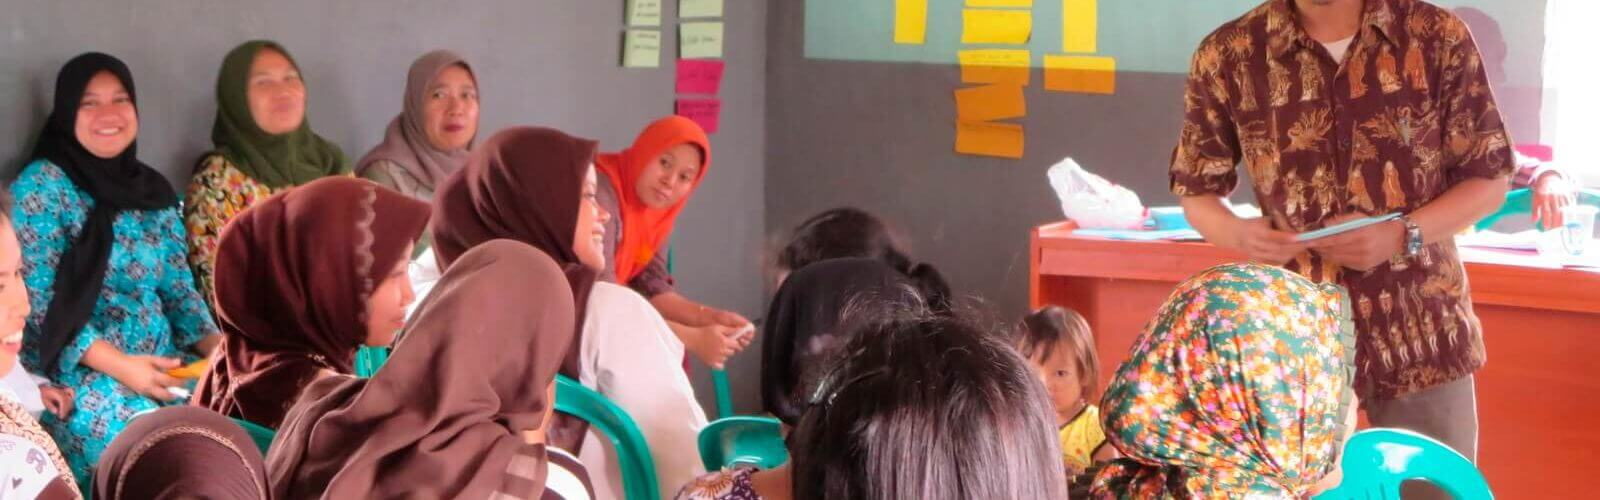 A community-based organization in Indonesia meets in a school